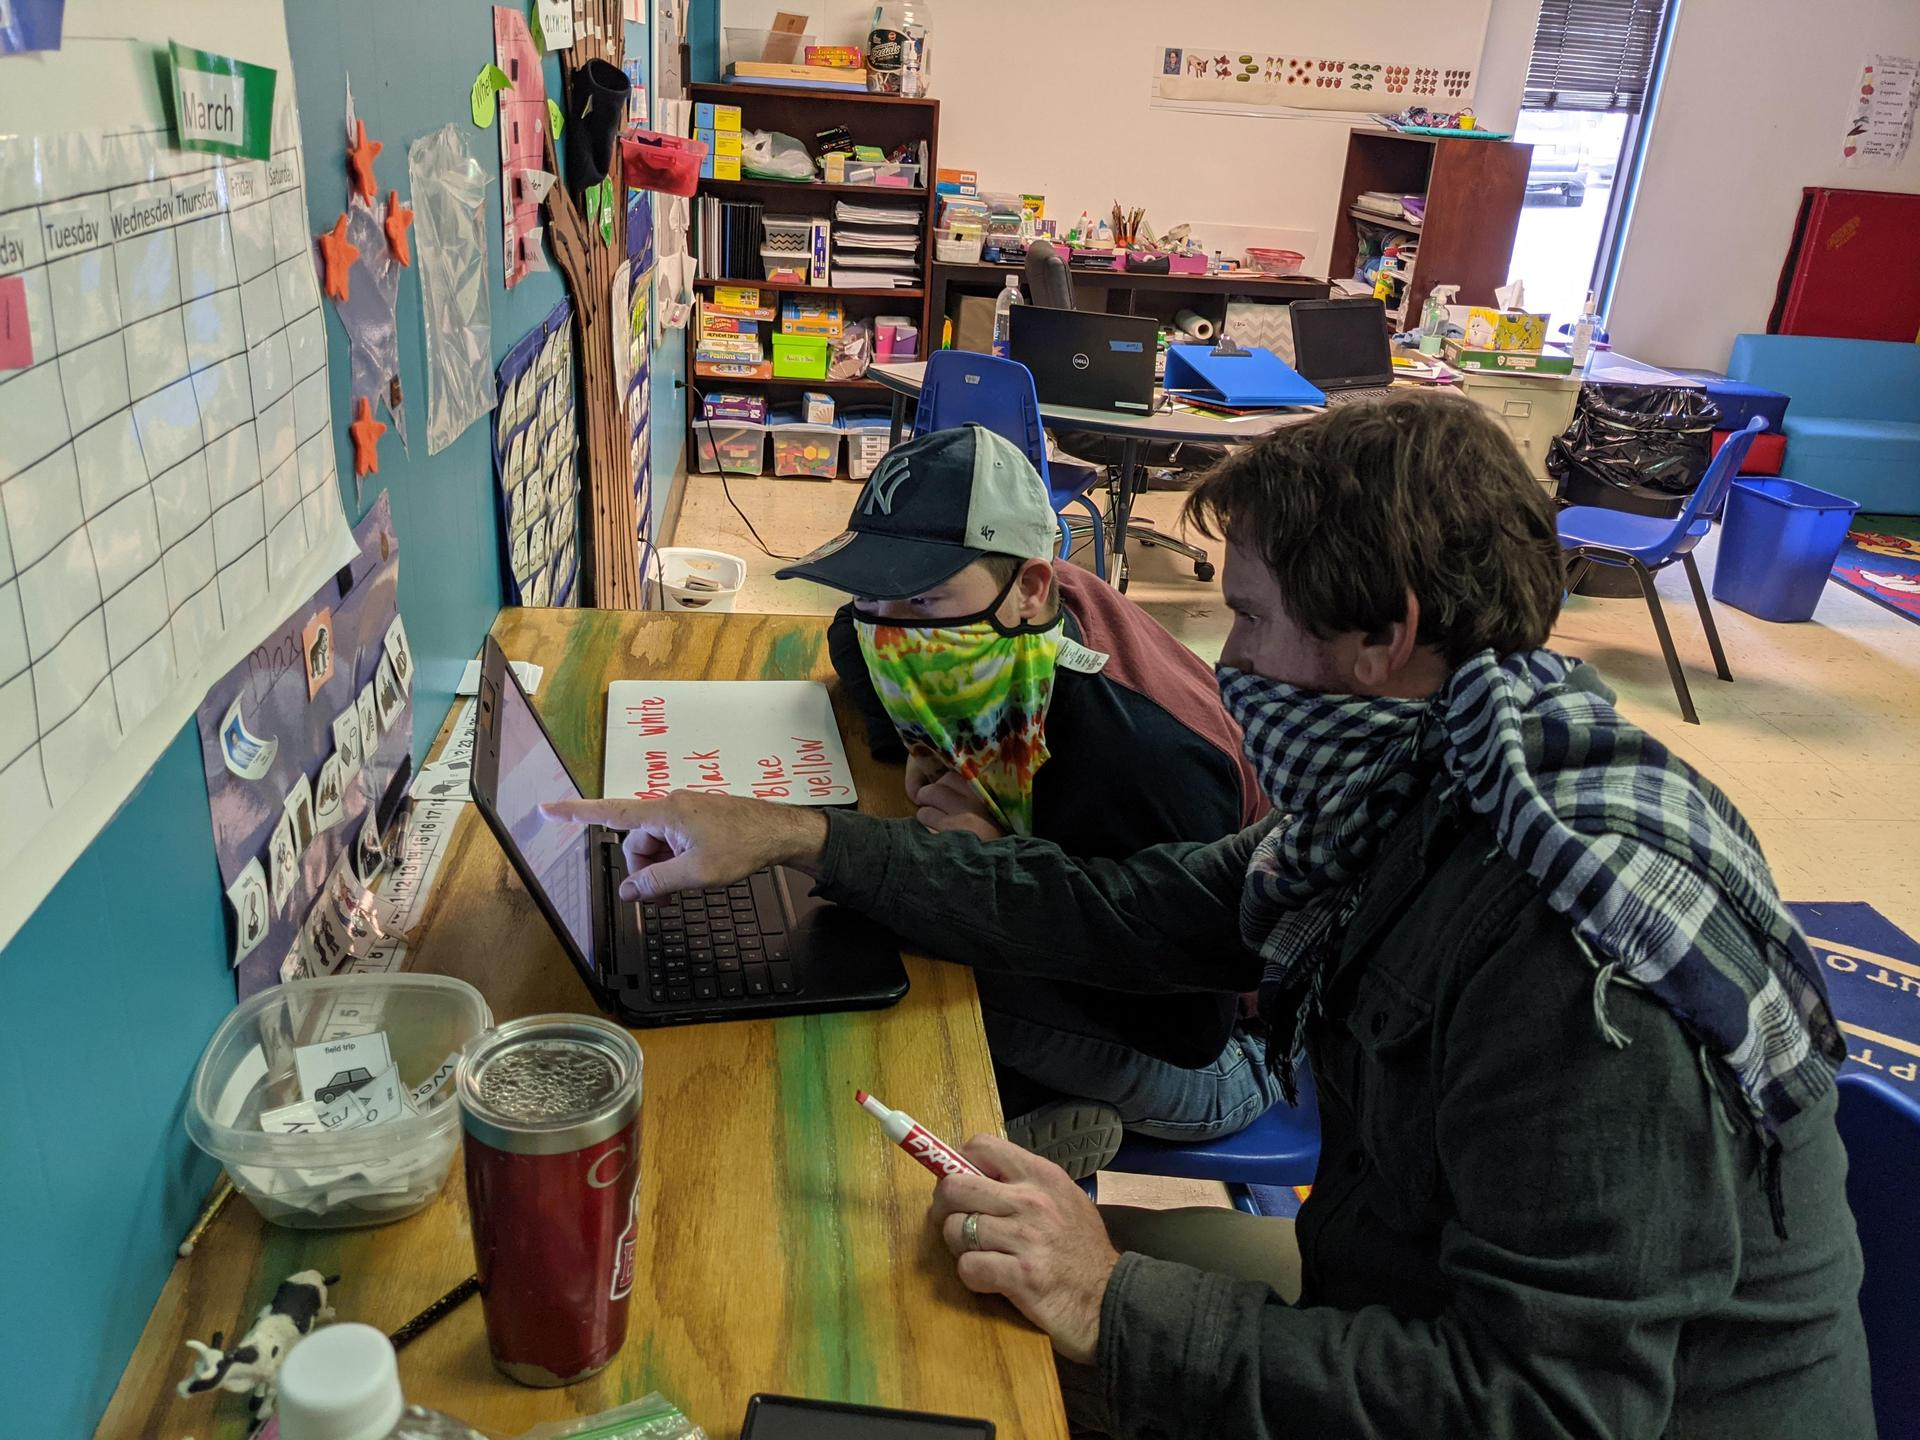 a student and teacher working at a computer